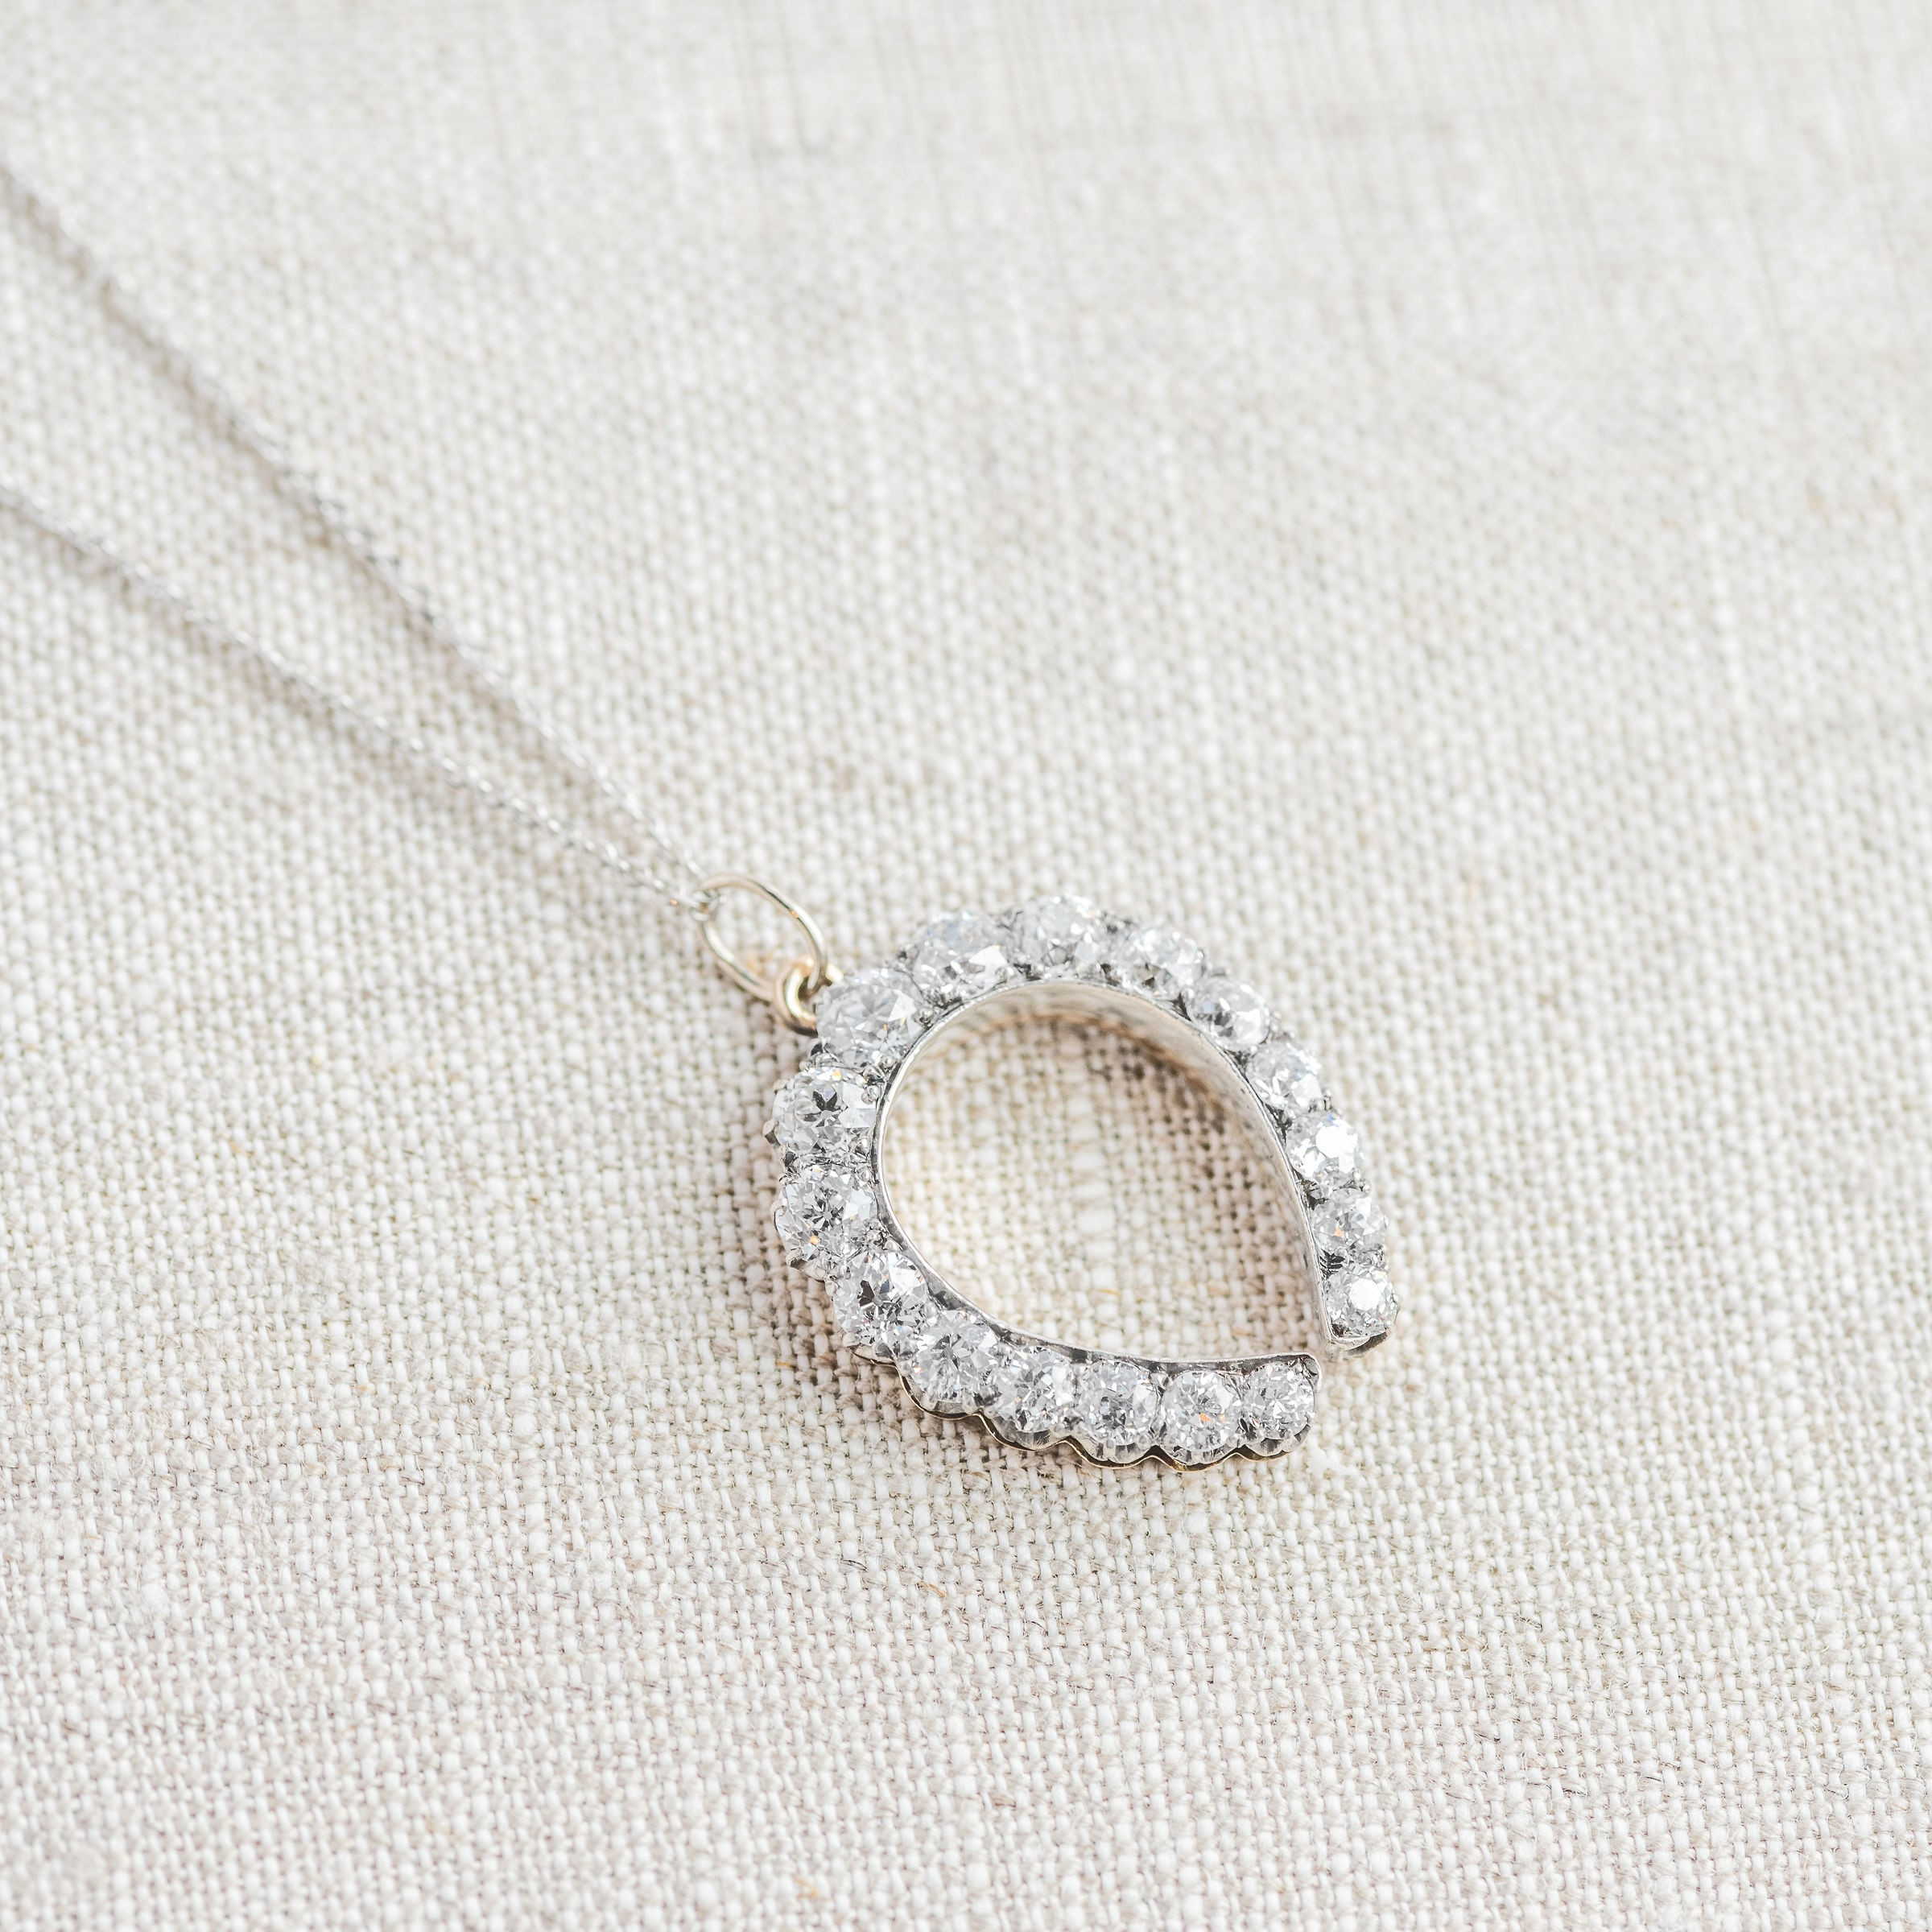 We much prefer our luck to be set with Old Mine cut diamonds! 💎🐴 Click  HERE  to shop this stunning Victorian era Old Mine cut diamond horseshoe pendant!